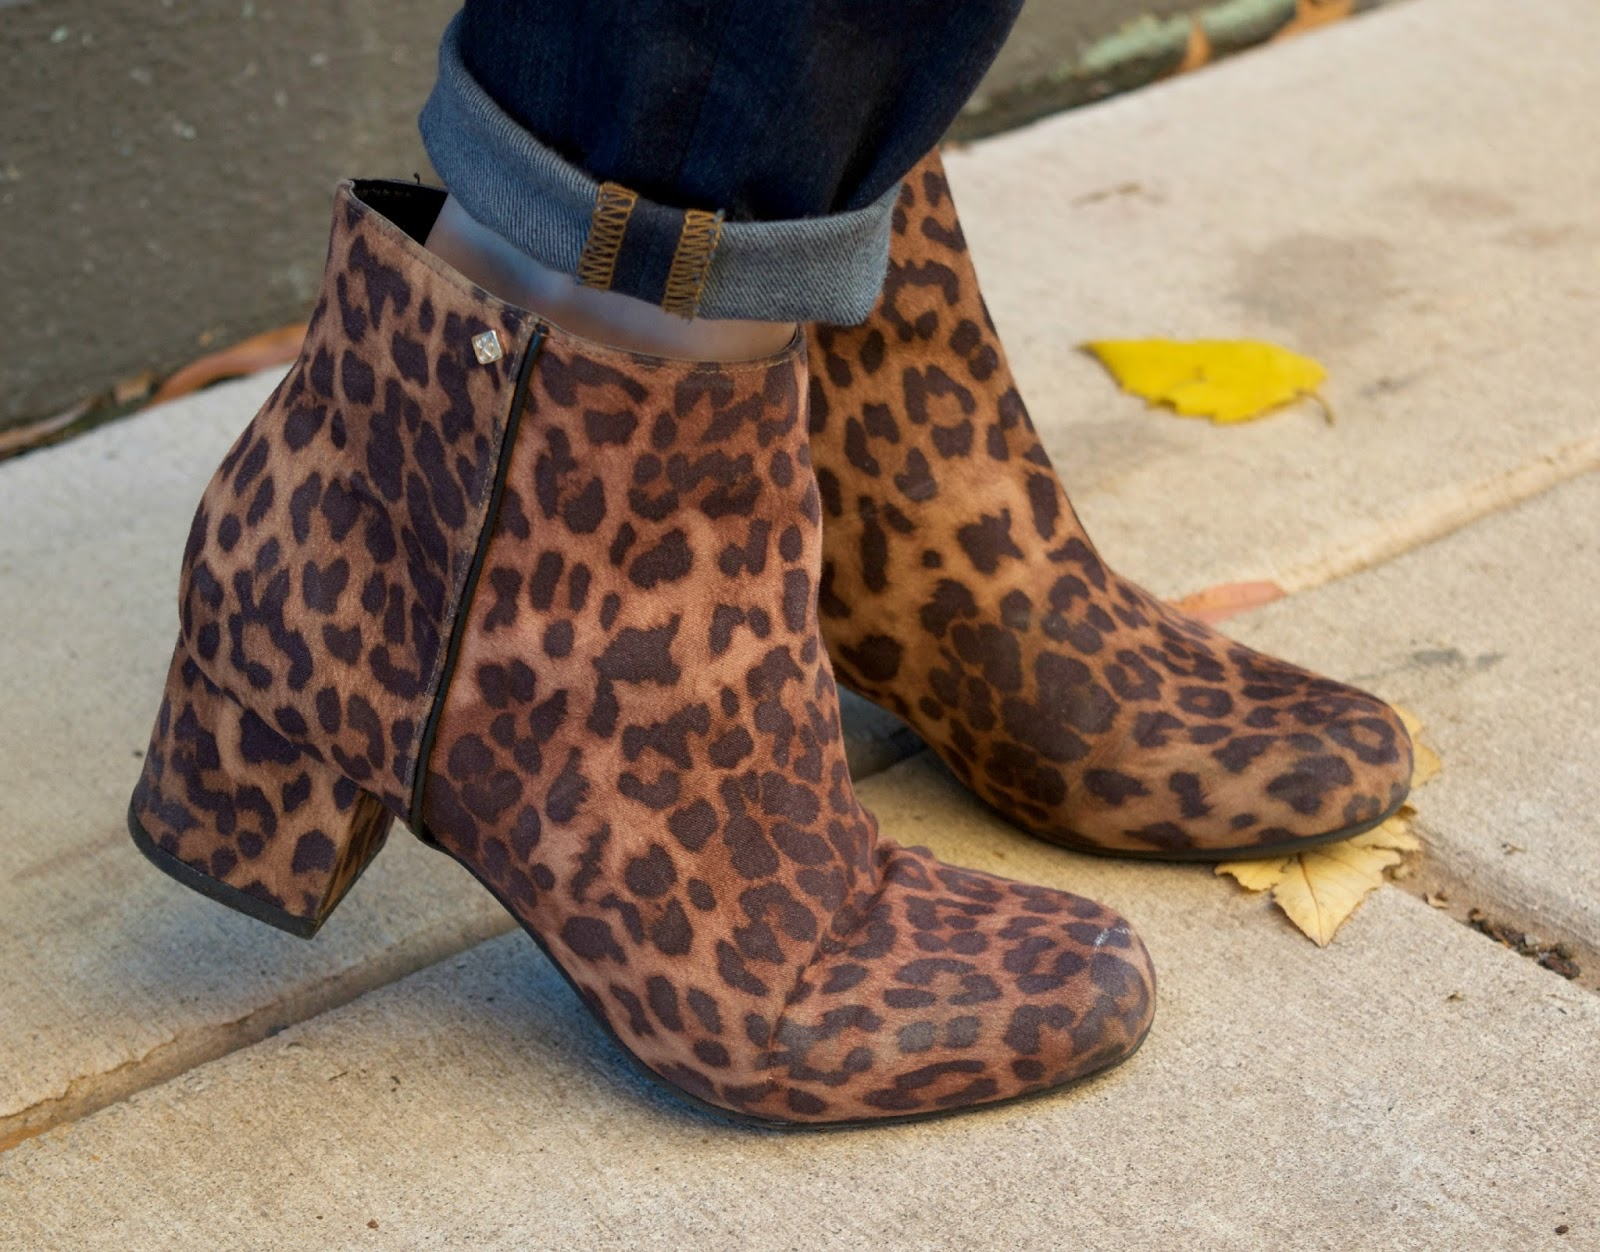 Sam & Libby leopard booties - target leopard booties - leopard print shoes - cheetah print booties - animal print booties - leopard print boots